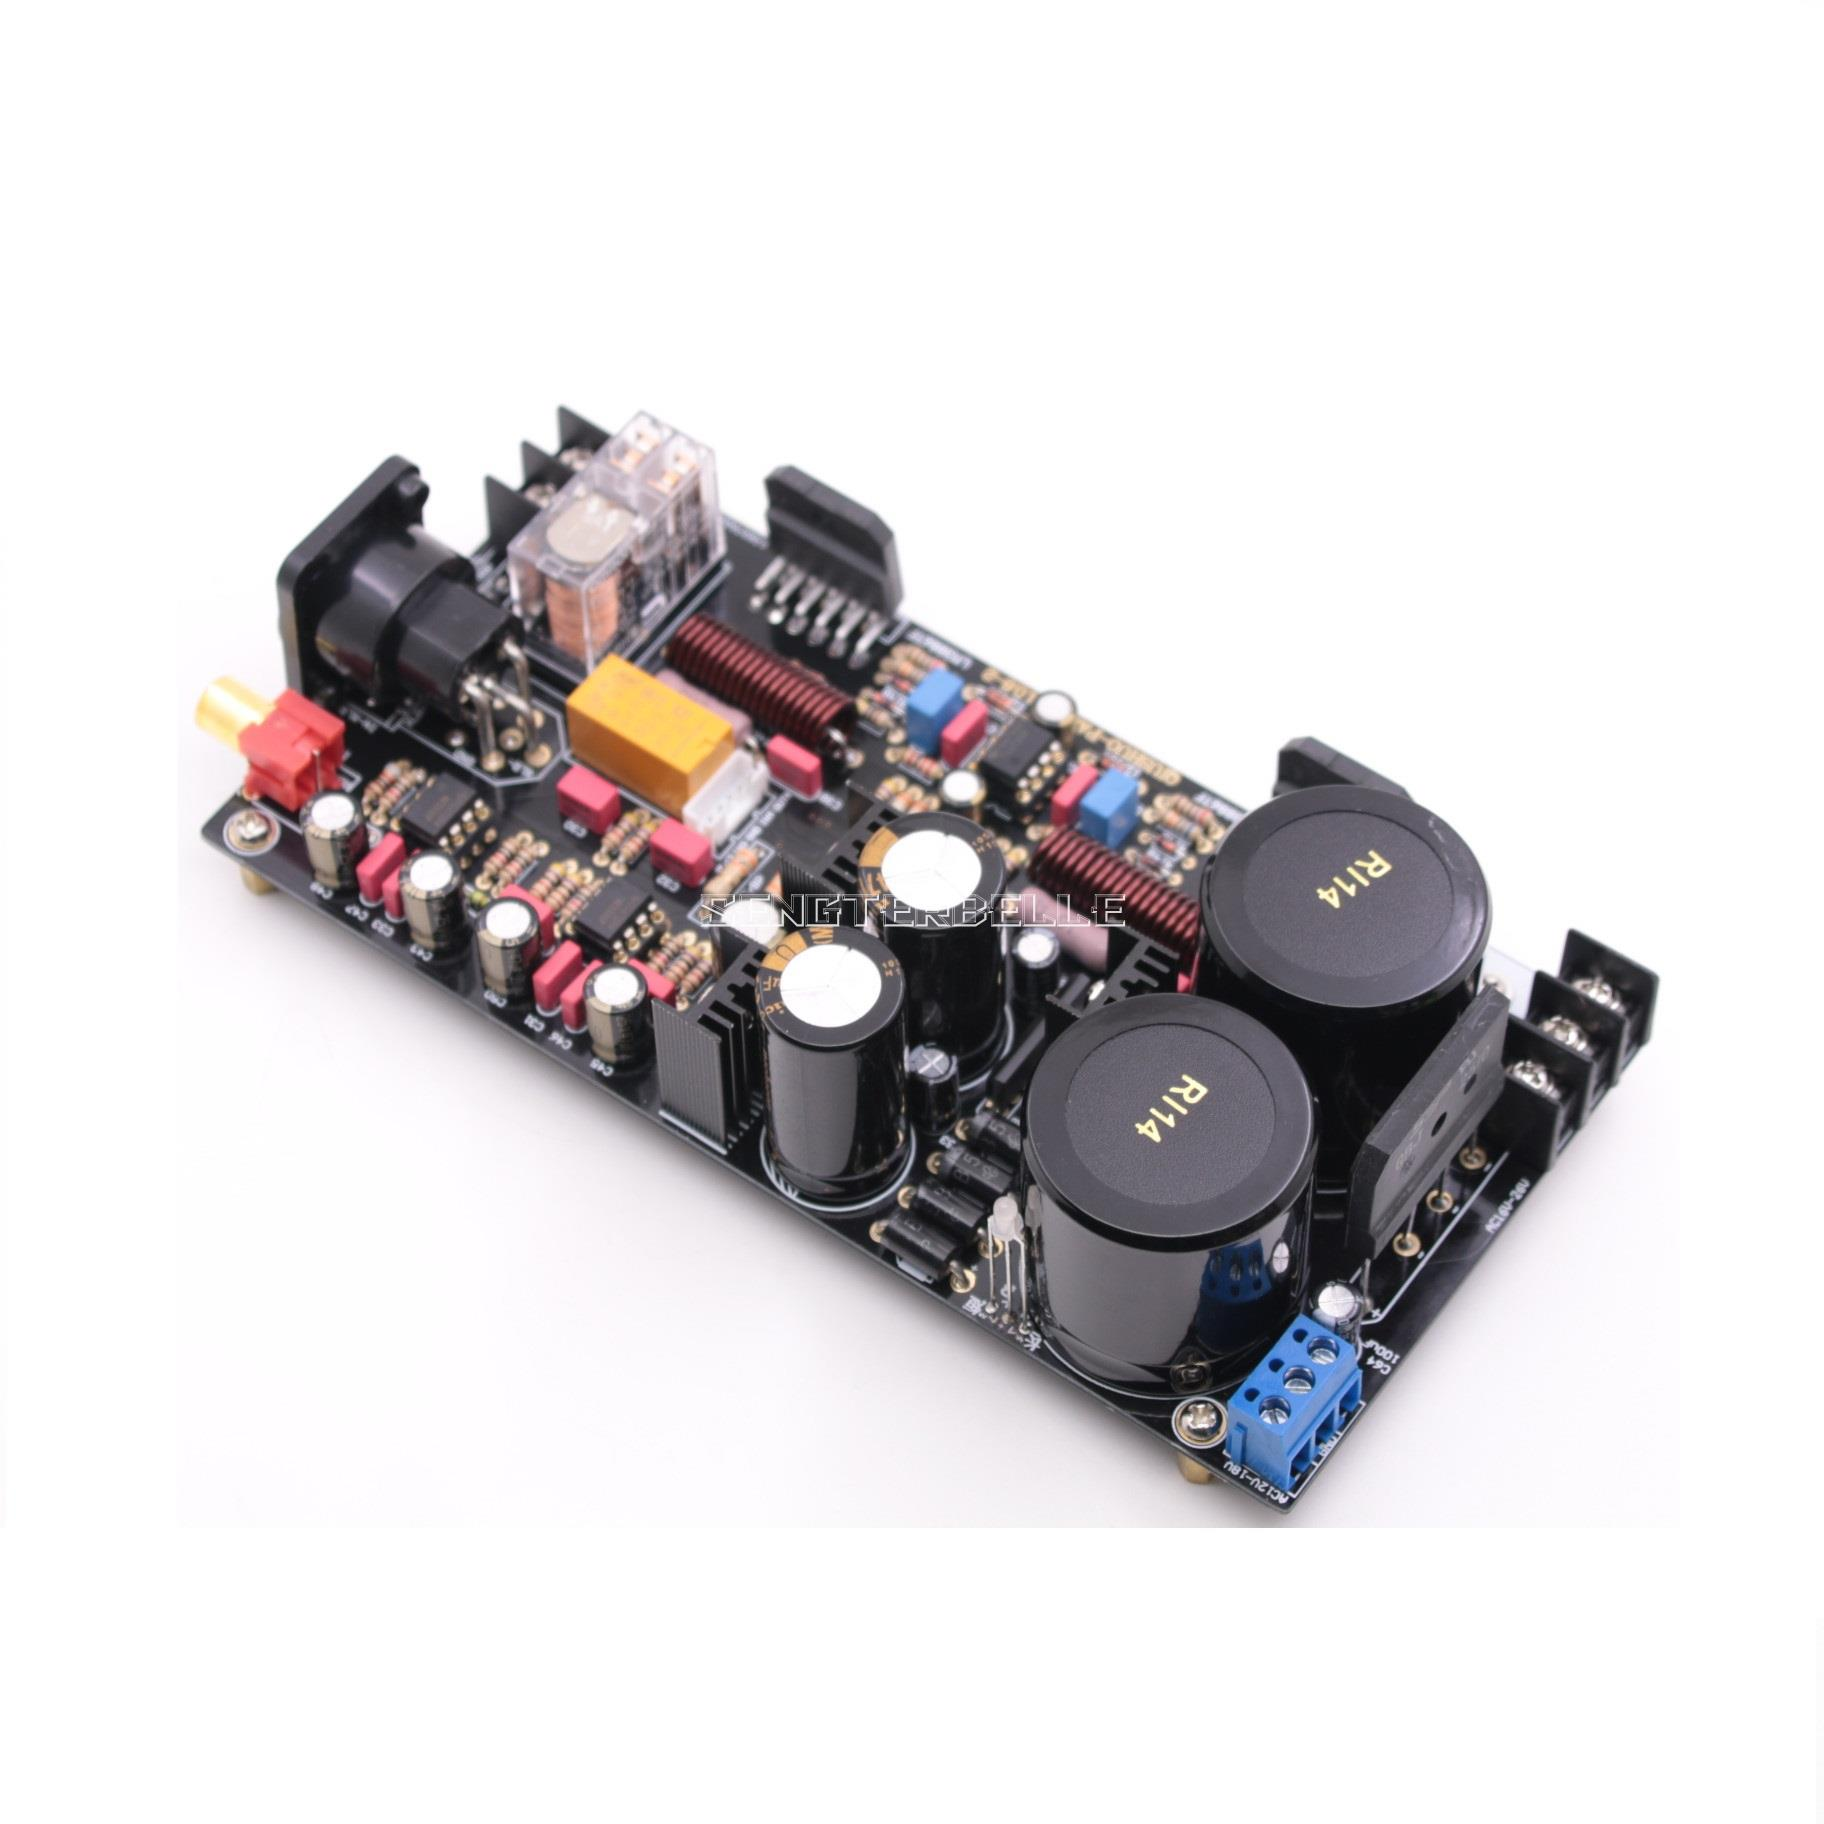 120W BTL 1.0 full balanced LM3886 Mono power amplifier//amp HL-117 No Heatsink